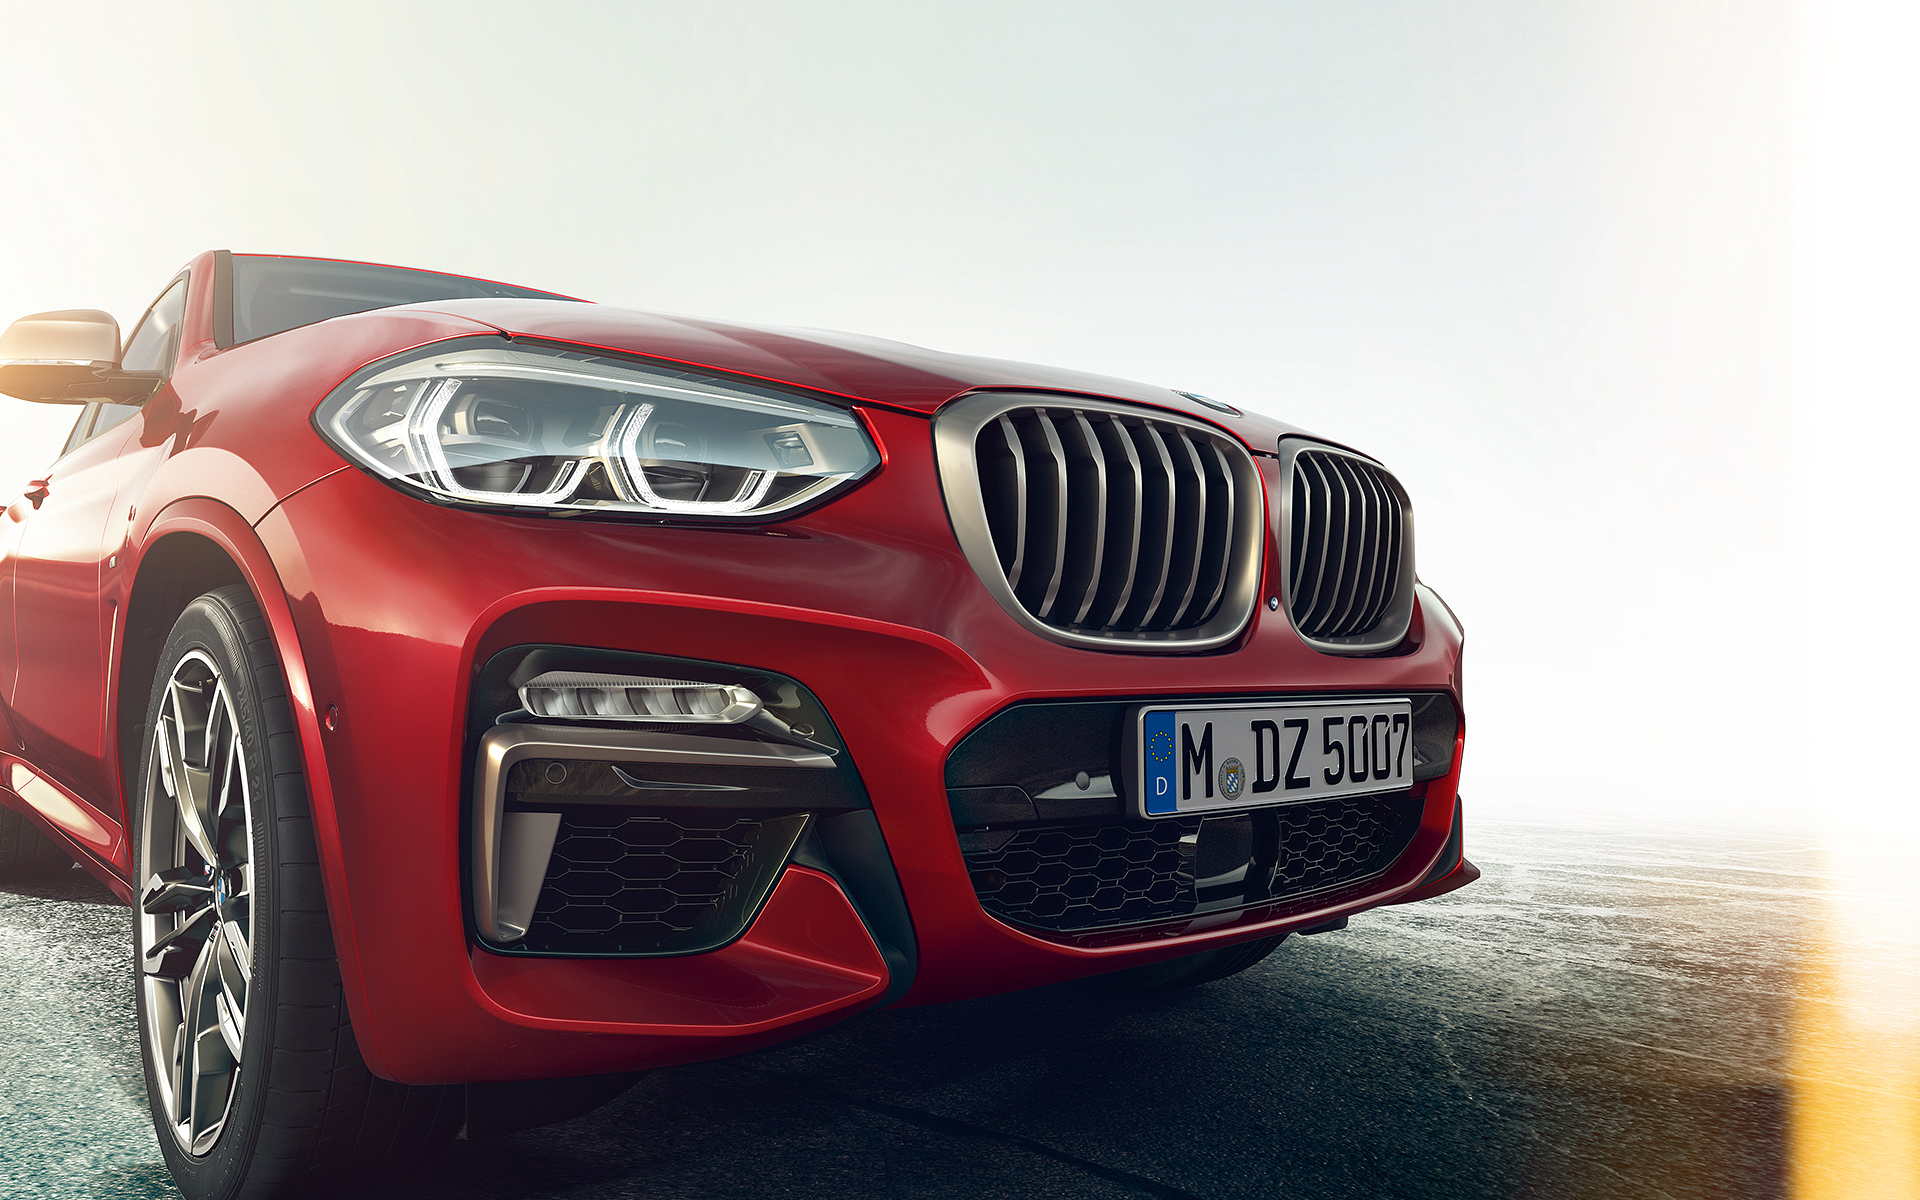 BMW X Series X4: headlights and grilles front zoom-up.